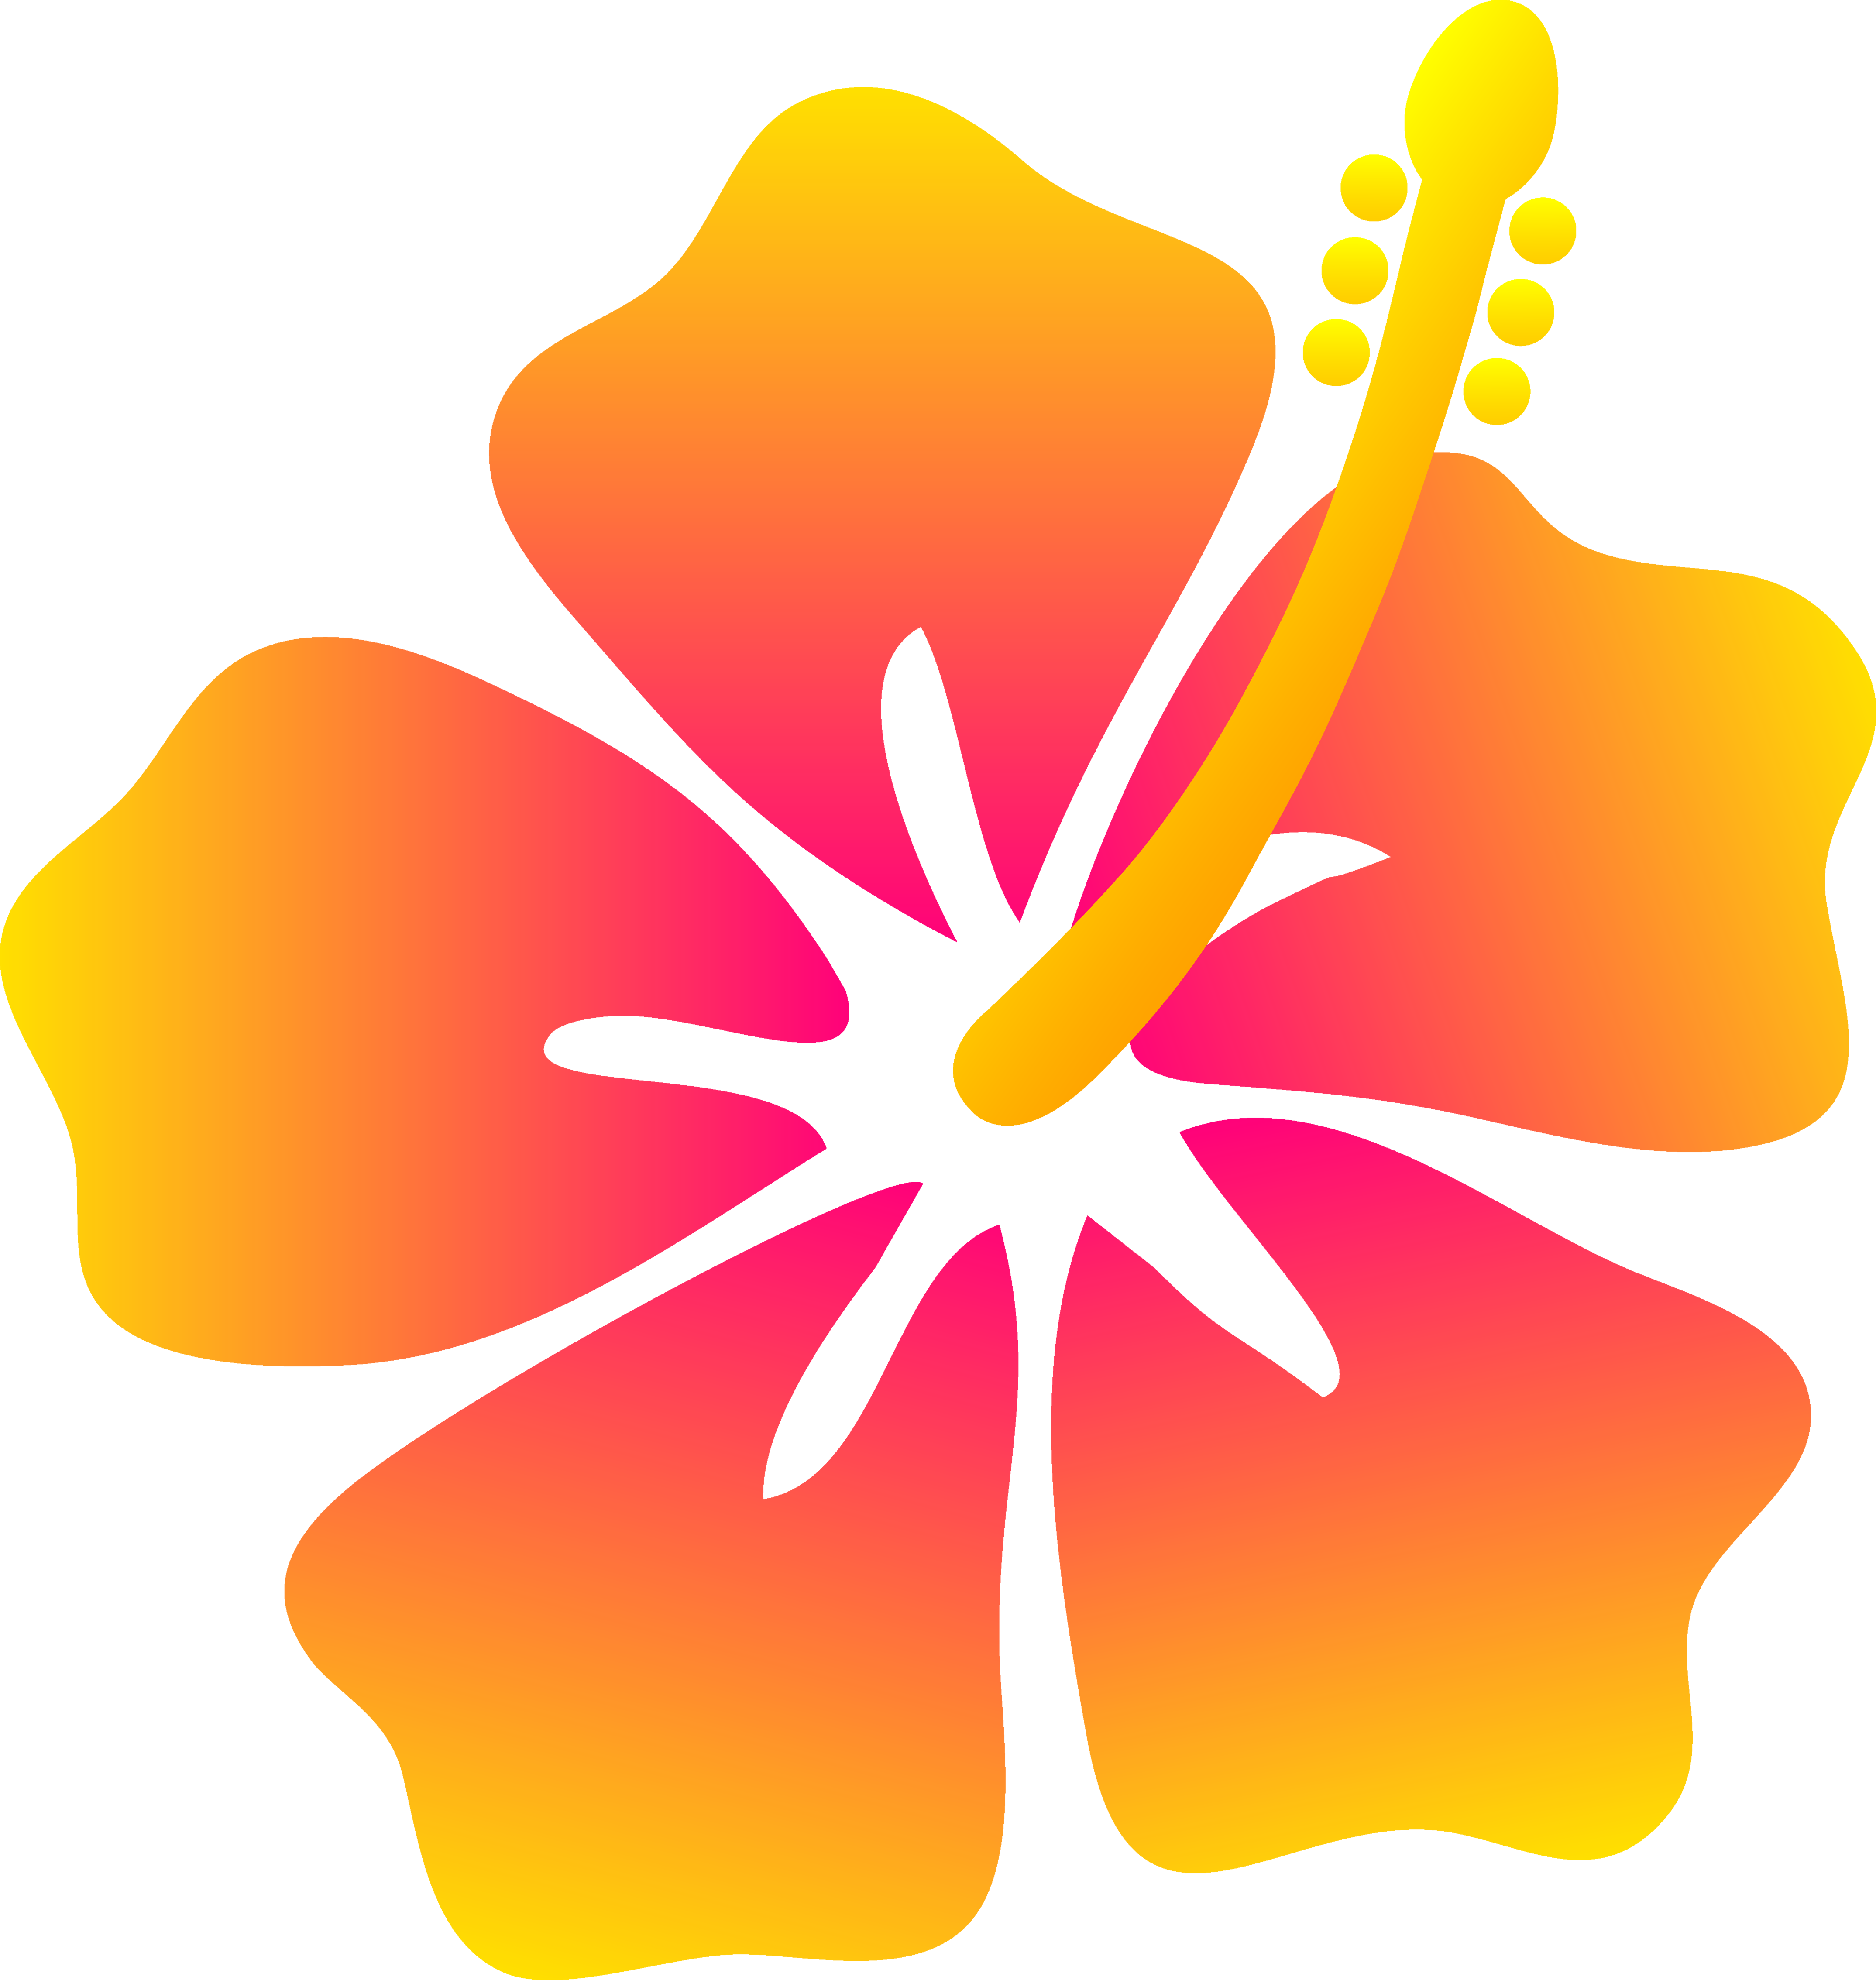 Yellow Flower clipart animated Hibiscus  Flower free flower